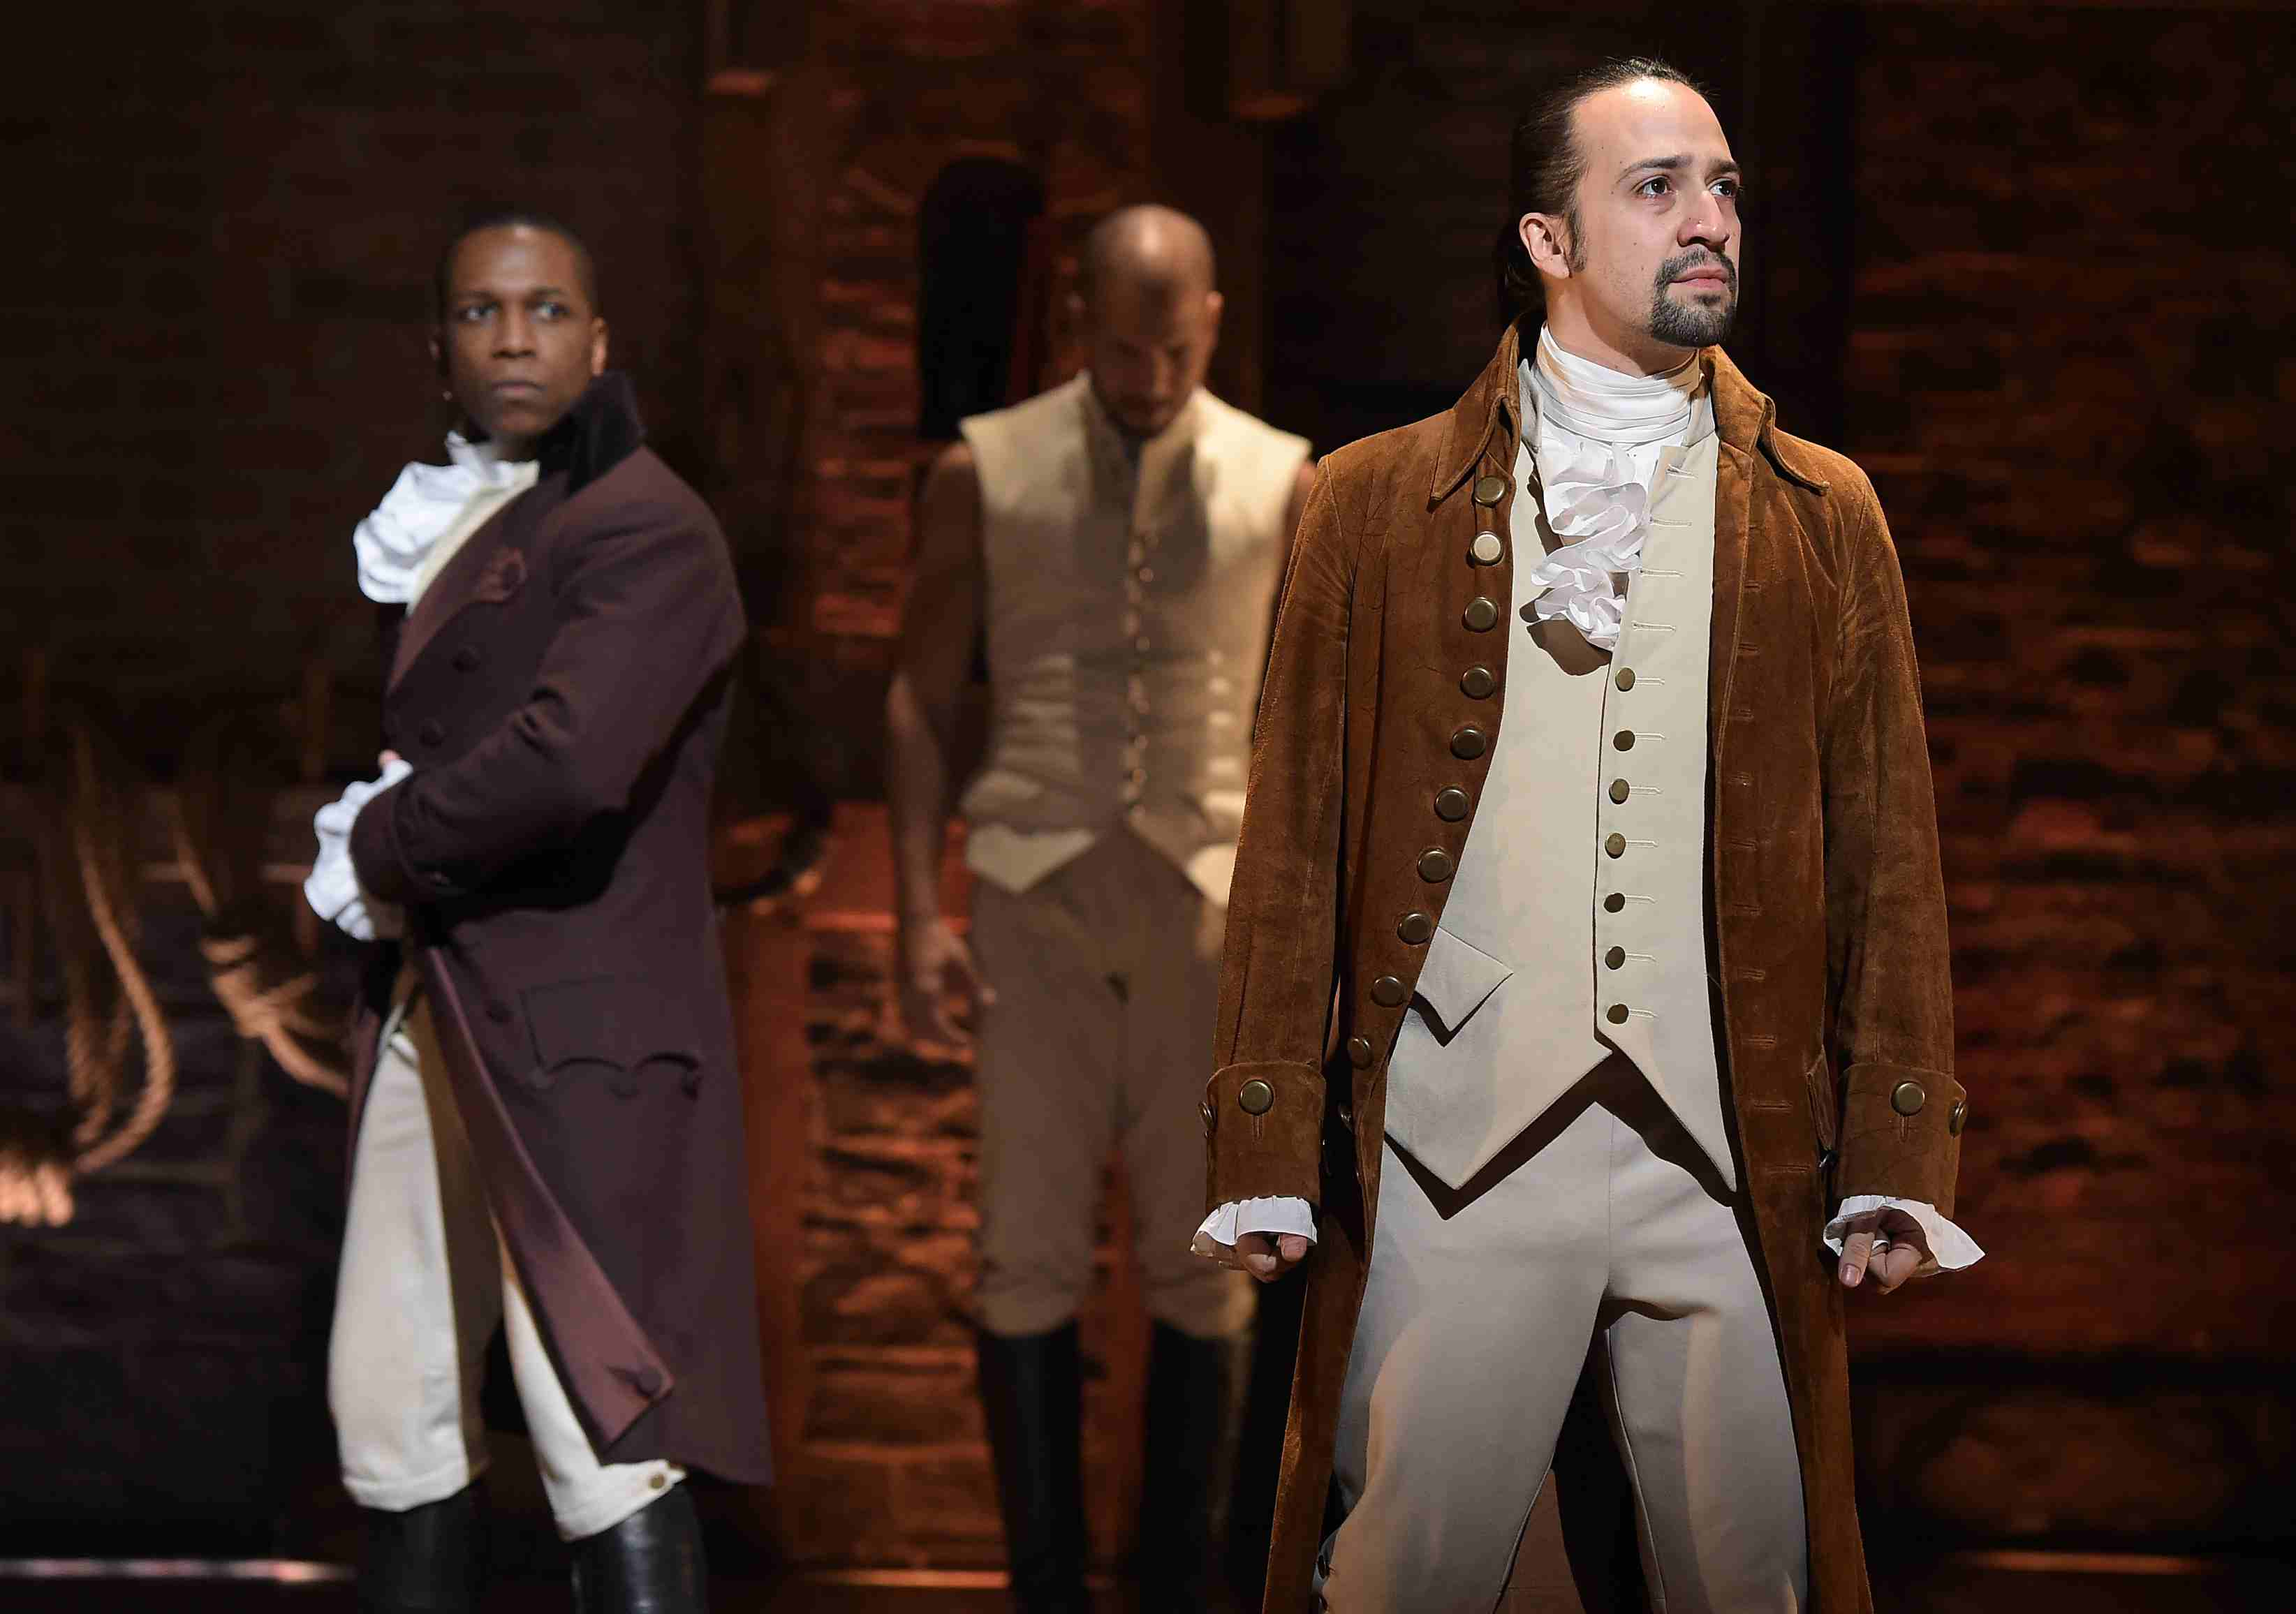 Hamilton actors Leslie Odom, Jr. and Lin Manuel-Miranda perform on stage, representing Ervin Goffman's dramaturgical perspective on social life presented in his book The Presentation of Self in Everyday Life.